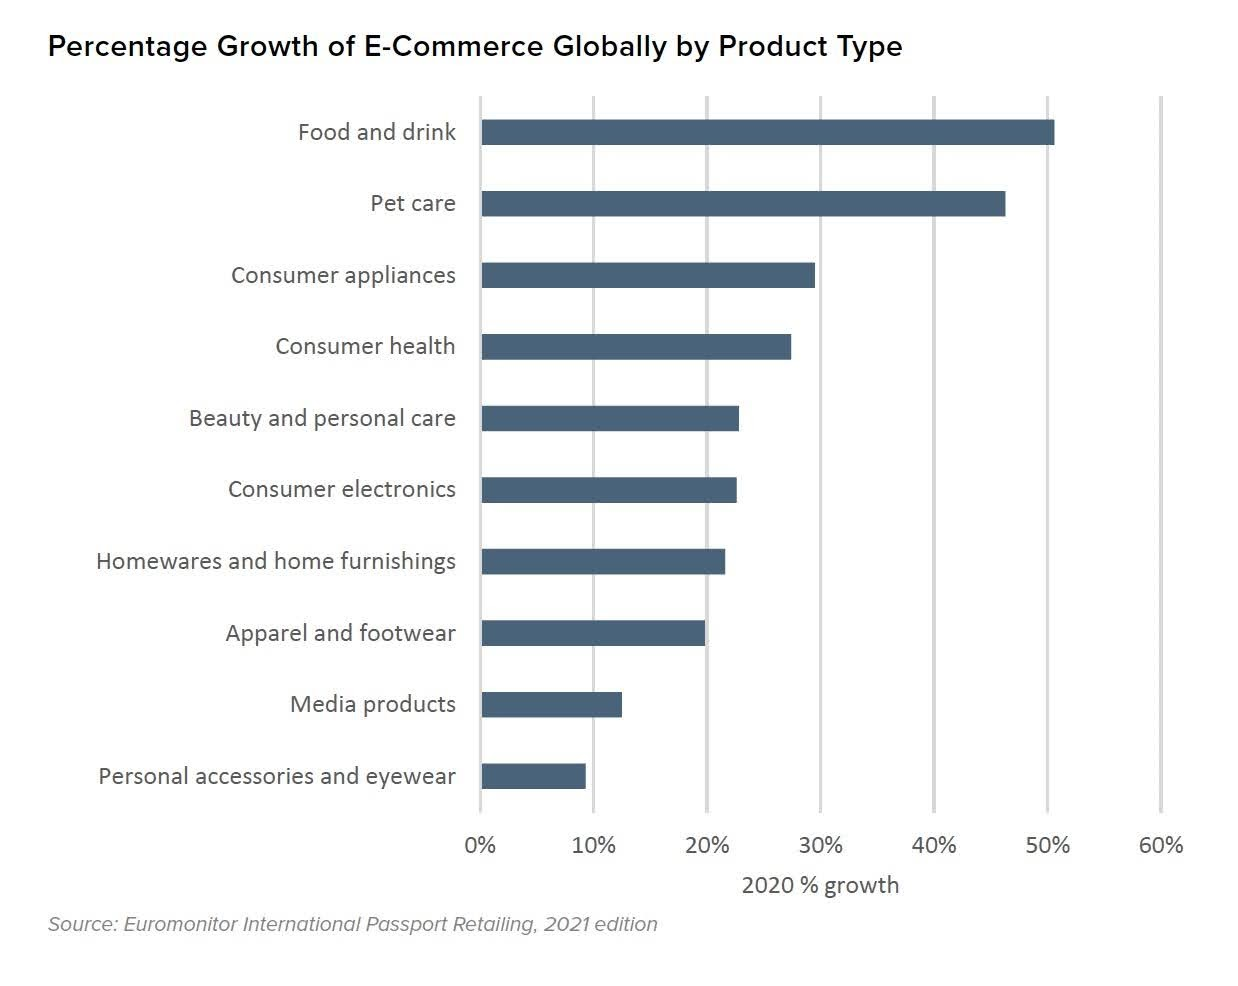 Percentage Growth of E-Commerce Globally by Product Type. Source: Euromonitor International Passport Retailing, 2021 edition